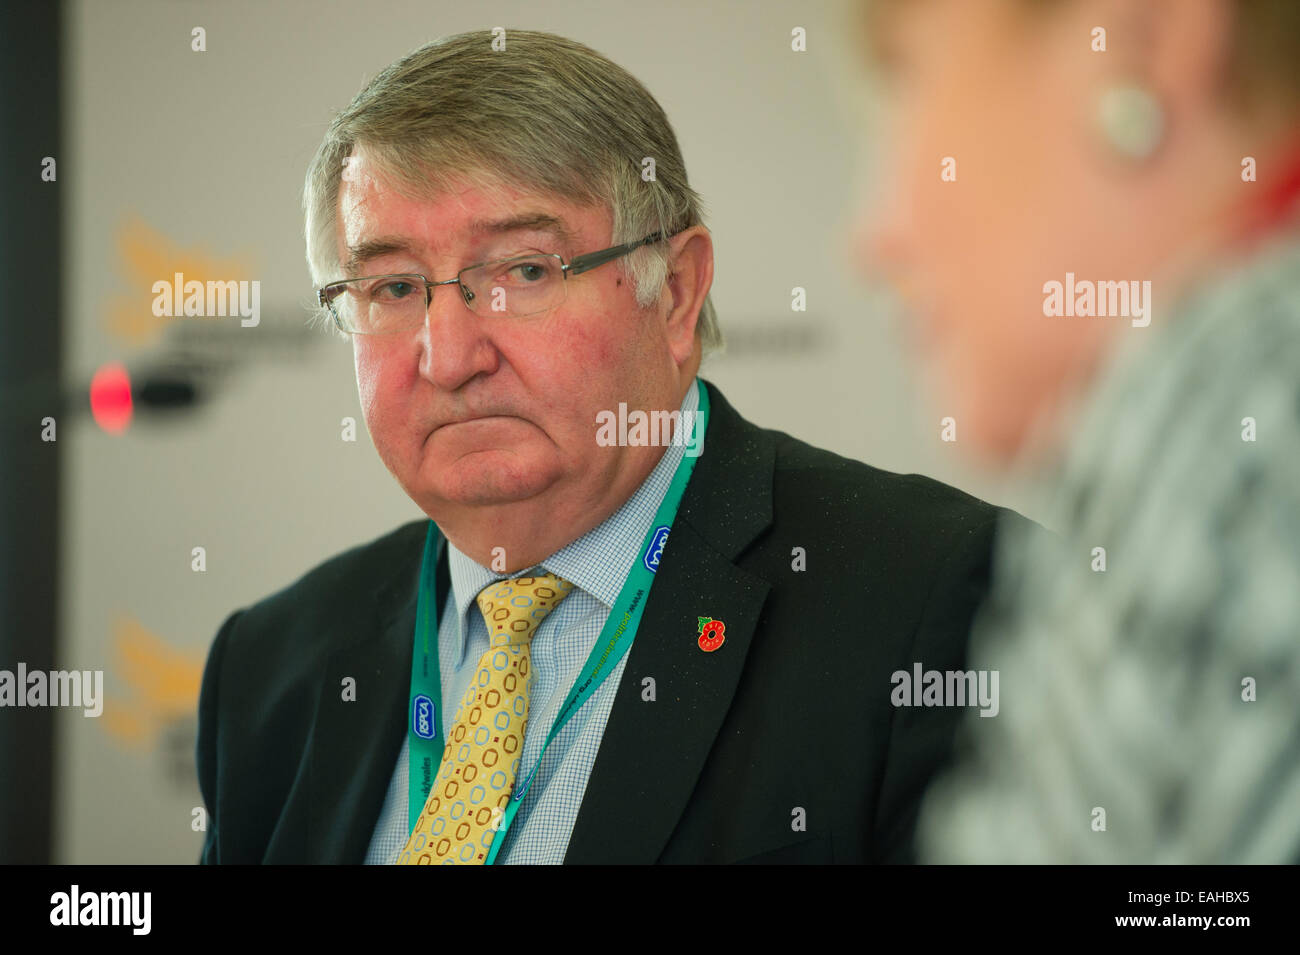 Aberystwyth, Wales, UK. 15th November, 2014. Roger Hugh Williams, CBE, MP, Member of Parliament (MP) for the constituency - Stock Image